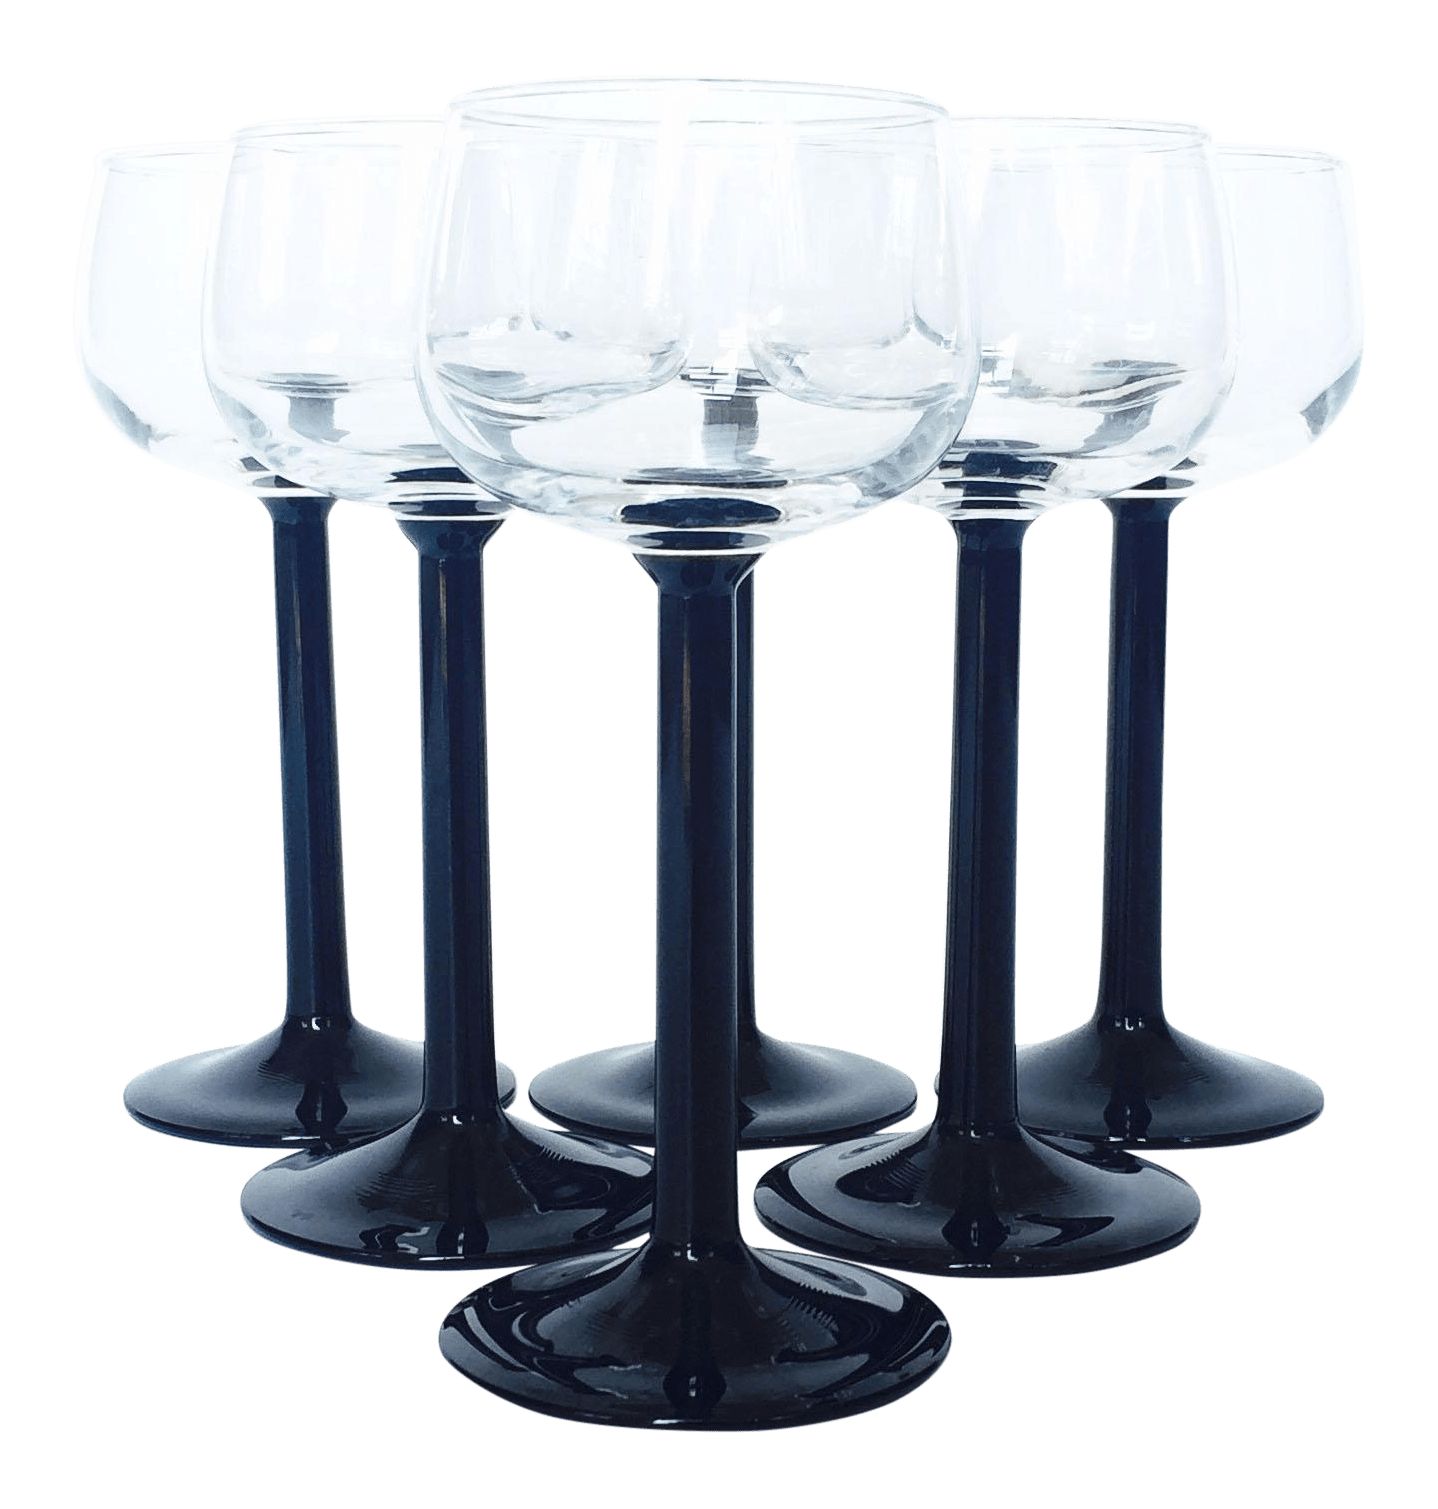 Wine Glasses With Black Stems Vintage Luminarc Black Stemmed Wine Glasses Set Of 6